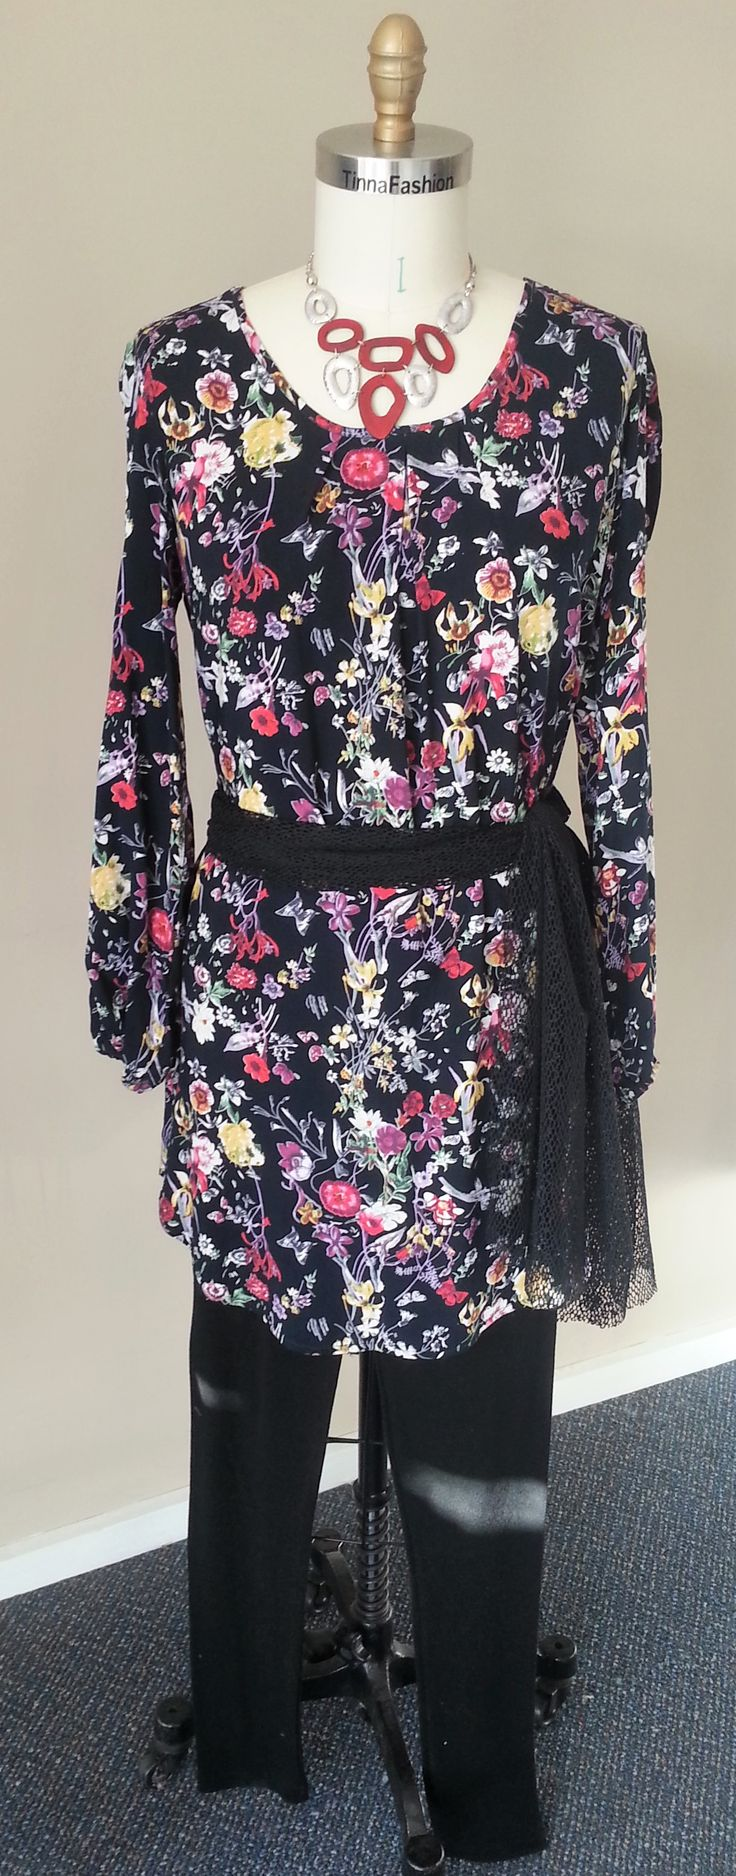 tunic length Soft Shirt with a pleat front in Ink Floral Fabric, a pair of Pure Wool Leggings, and a sash/scarf made from Black Holiday fabric